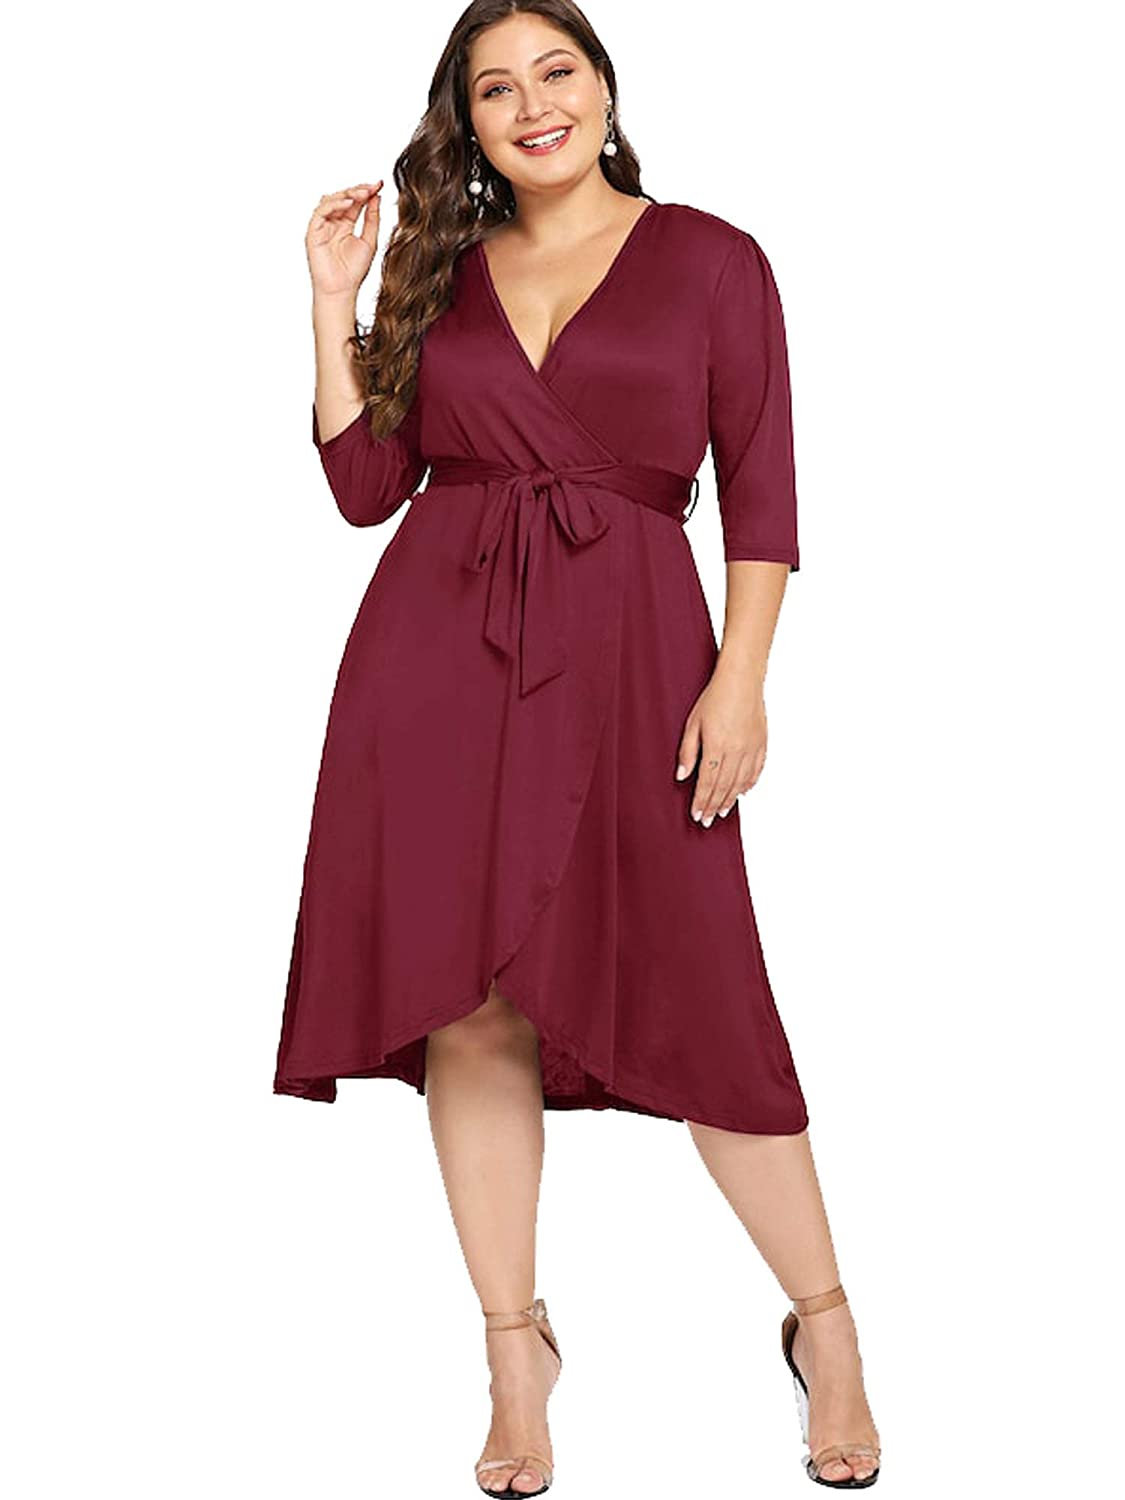 ae926b56172c2 ESPRLIA Women's Empire Waist Plus Size Midi Casual Cocktail Dresses with  Belt at Amazon Women's Clothing store: